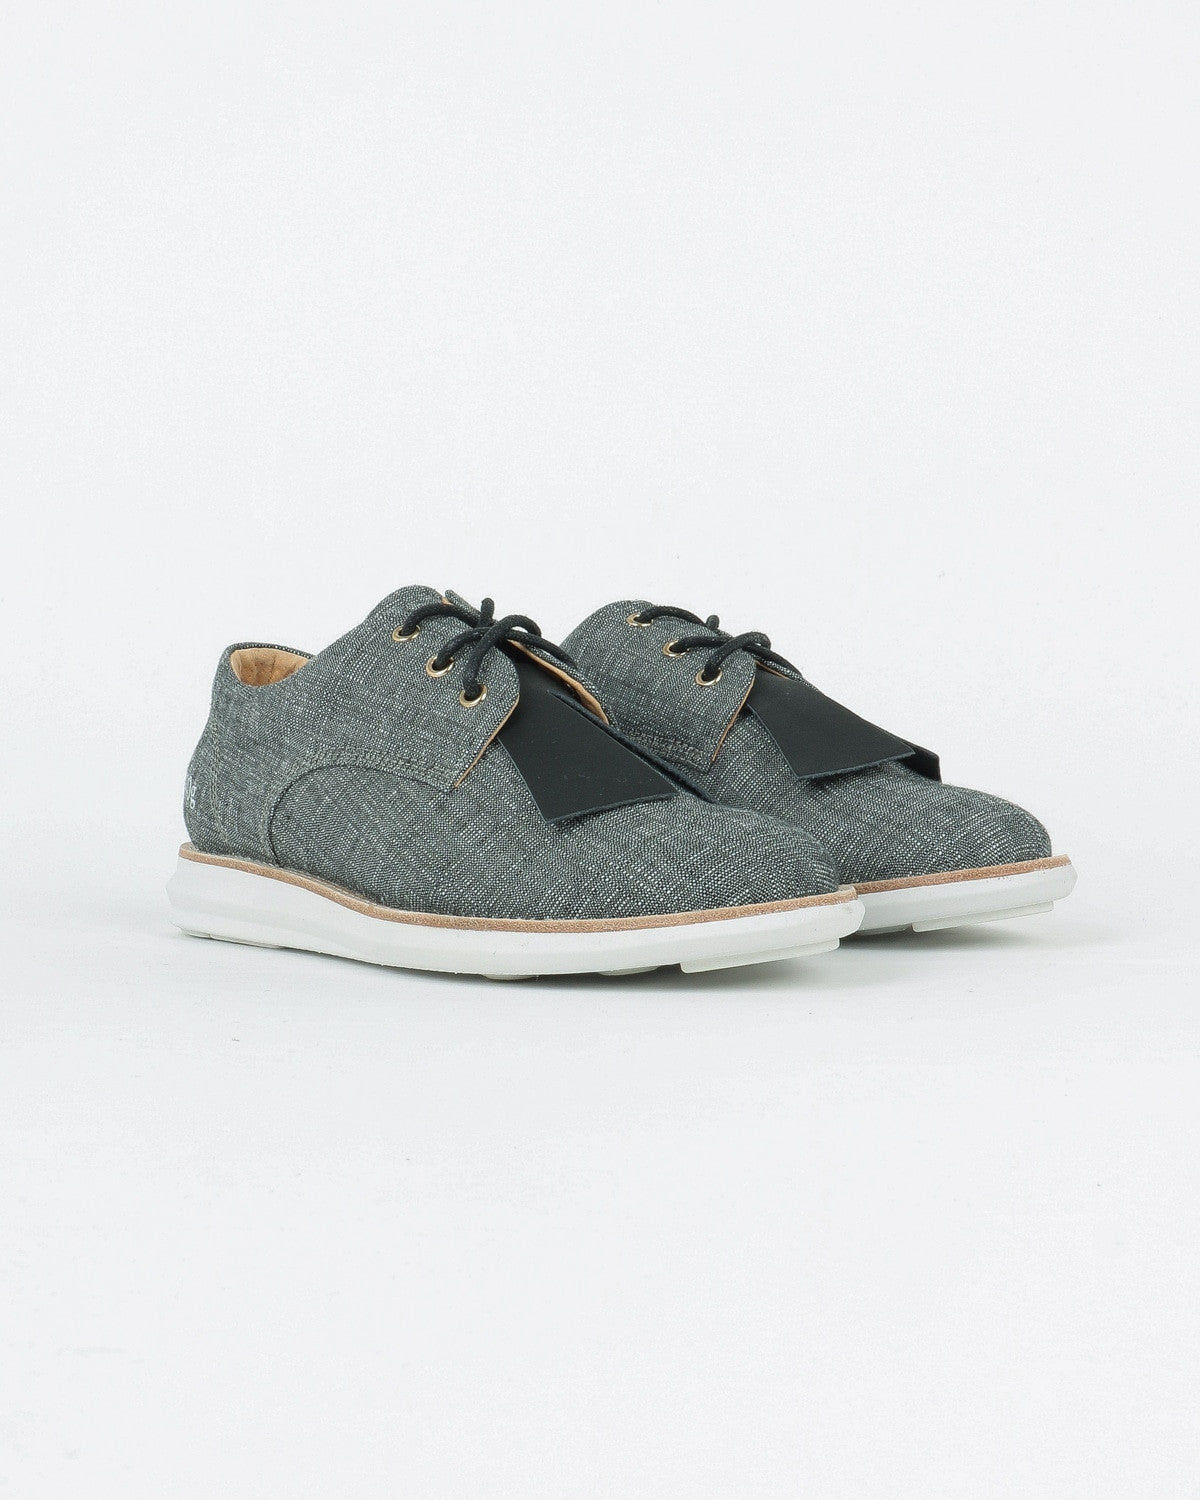 gram shoes_380g wa derby snaeker_grey ginghaim_view_2_4